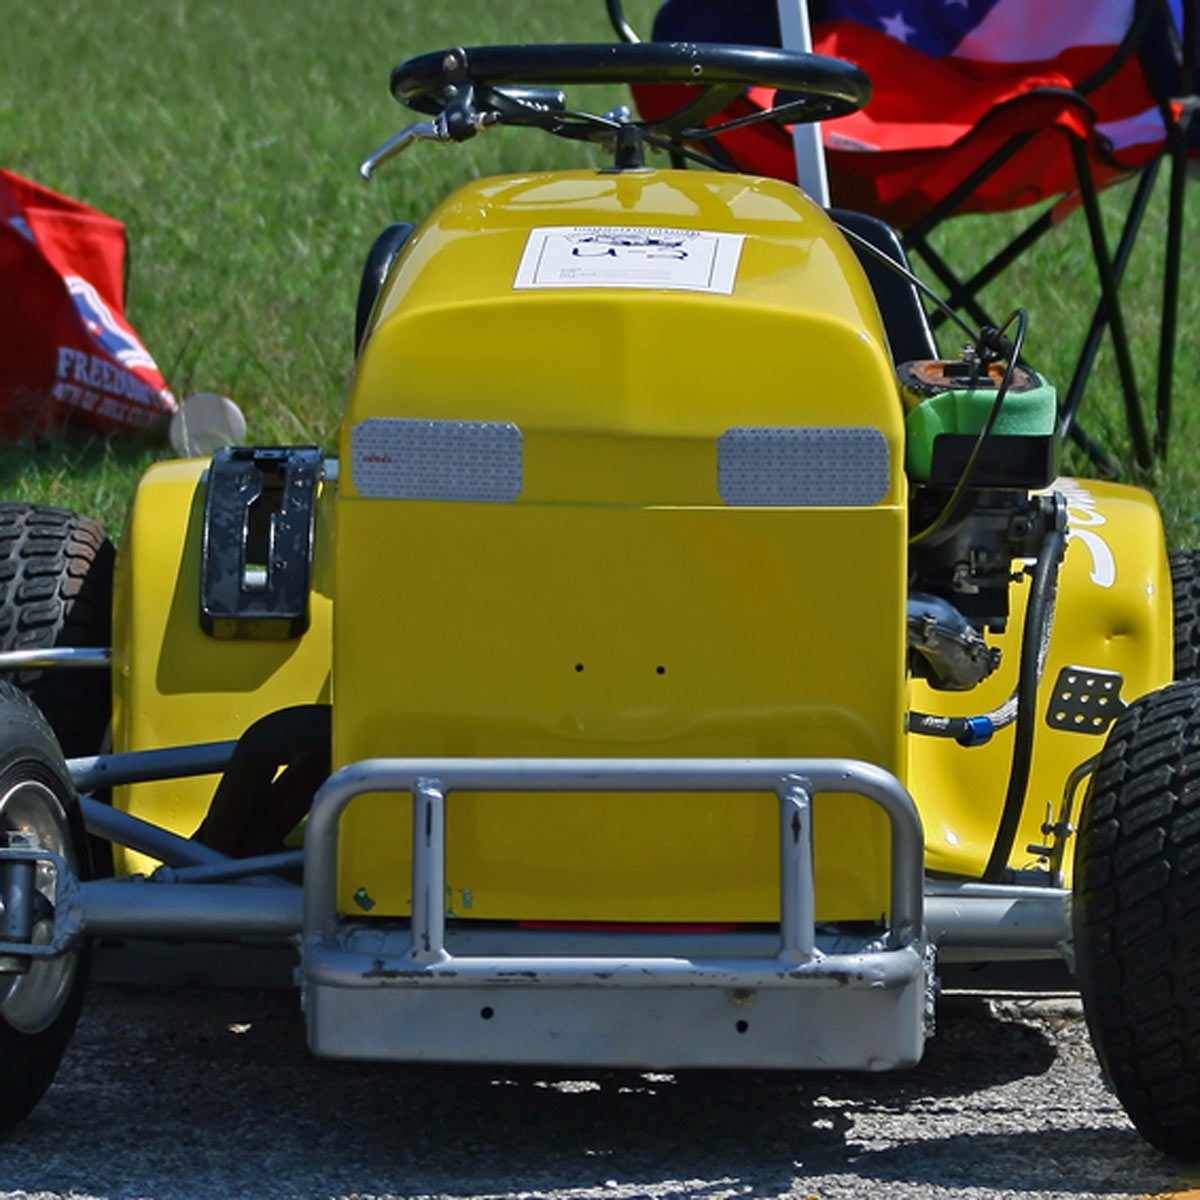 yellow hot rod lawn mower